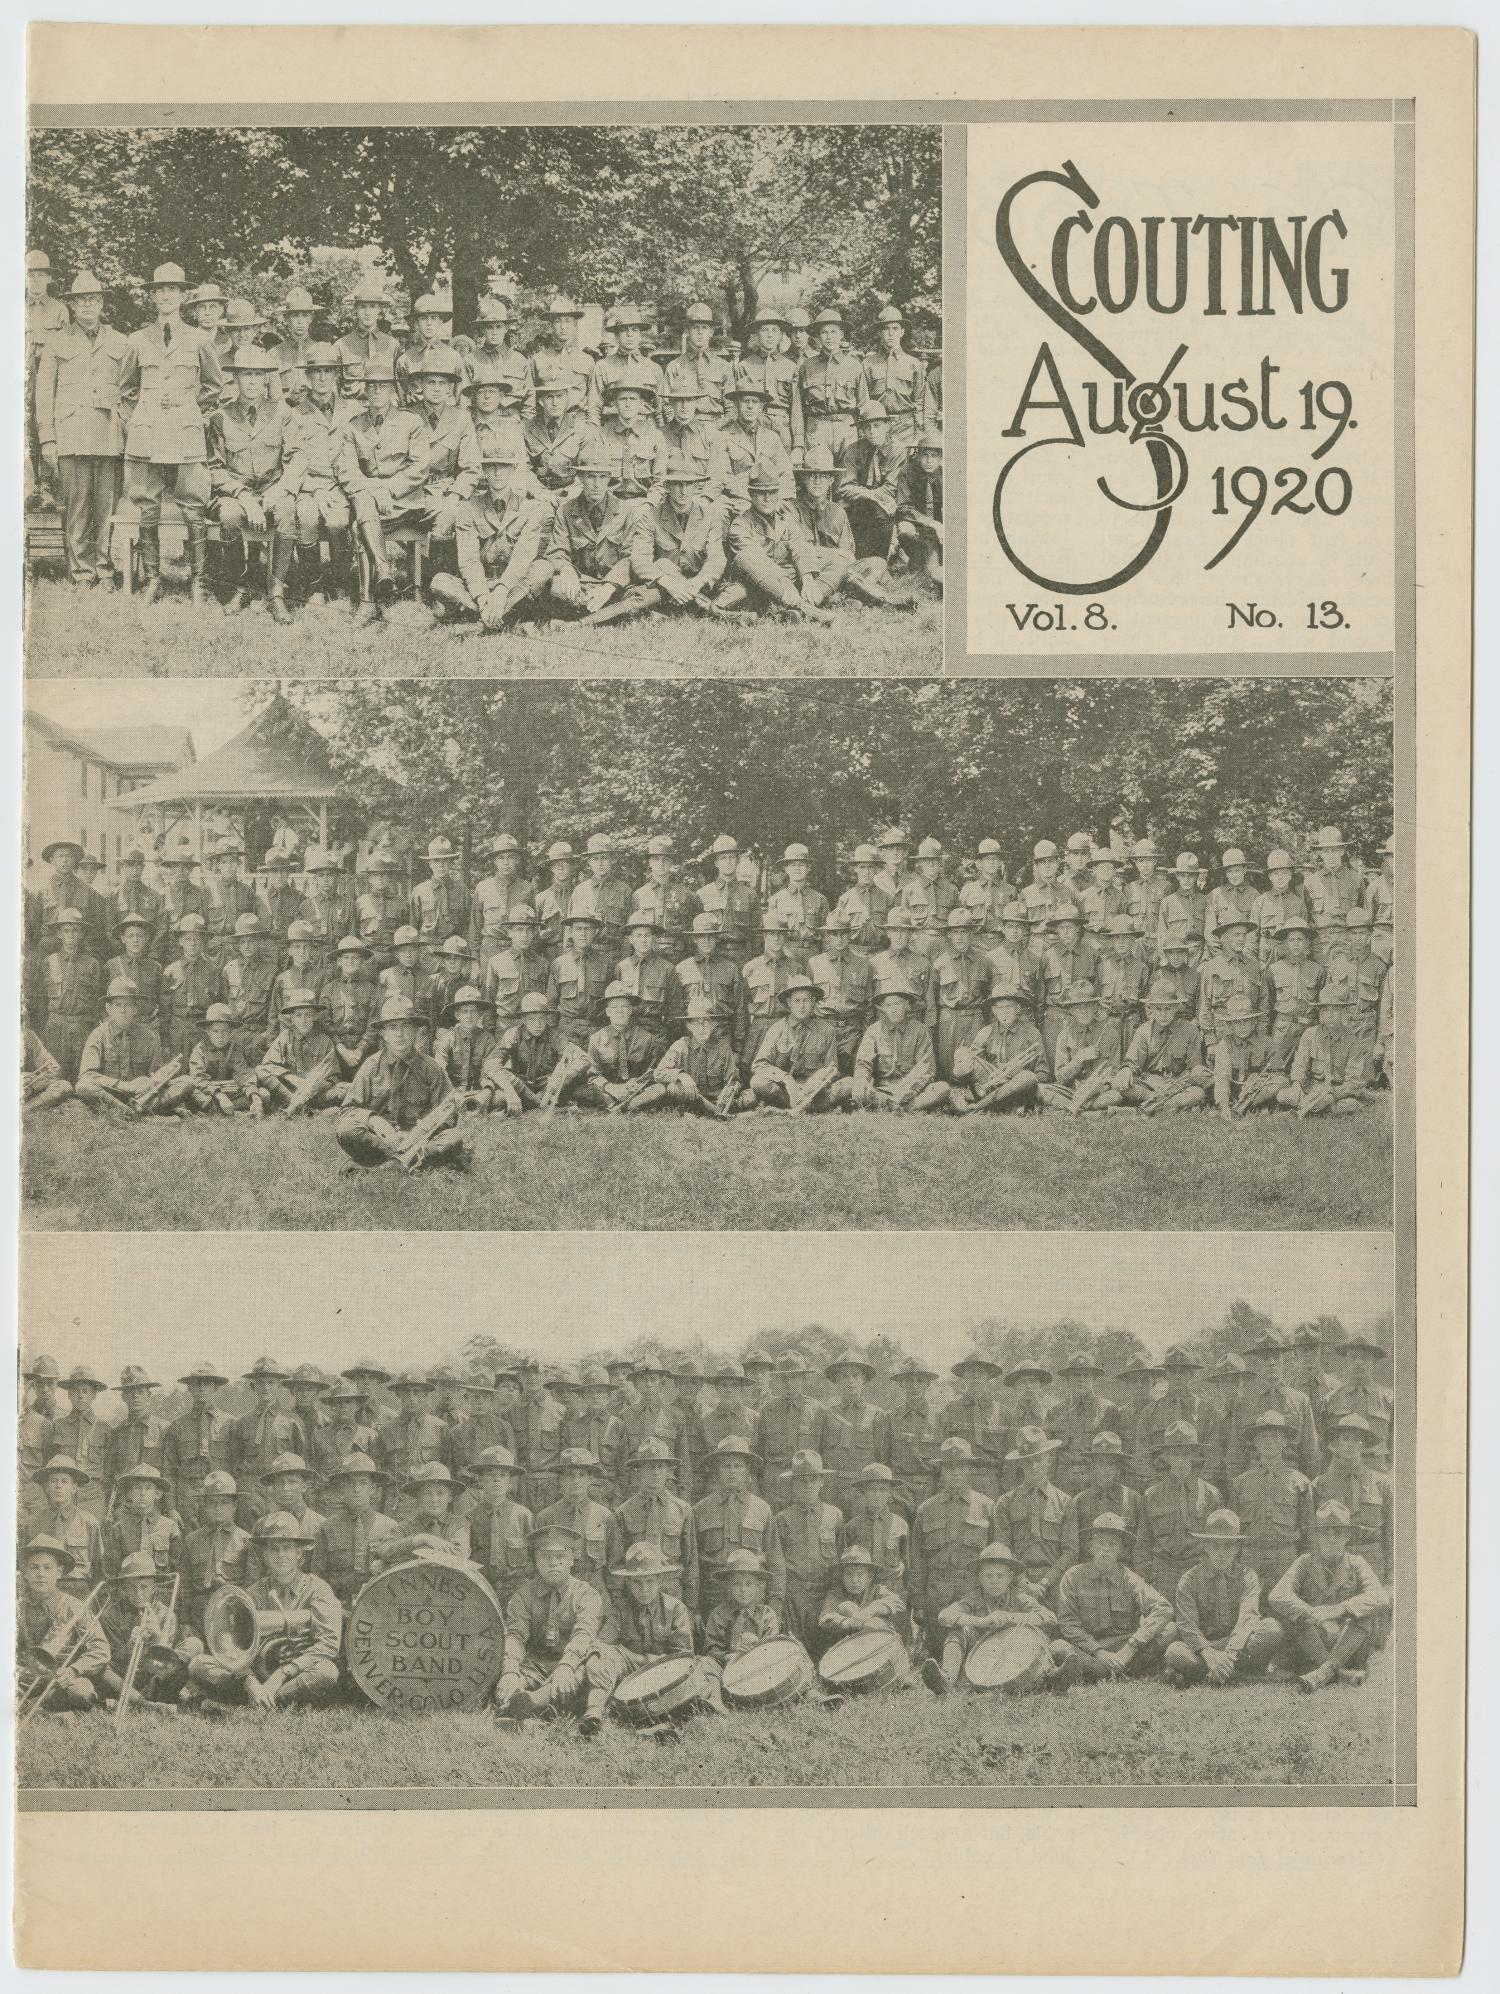 Scouting, Volume 8, Number 13, August 19, 1920                                                                                                      1